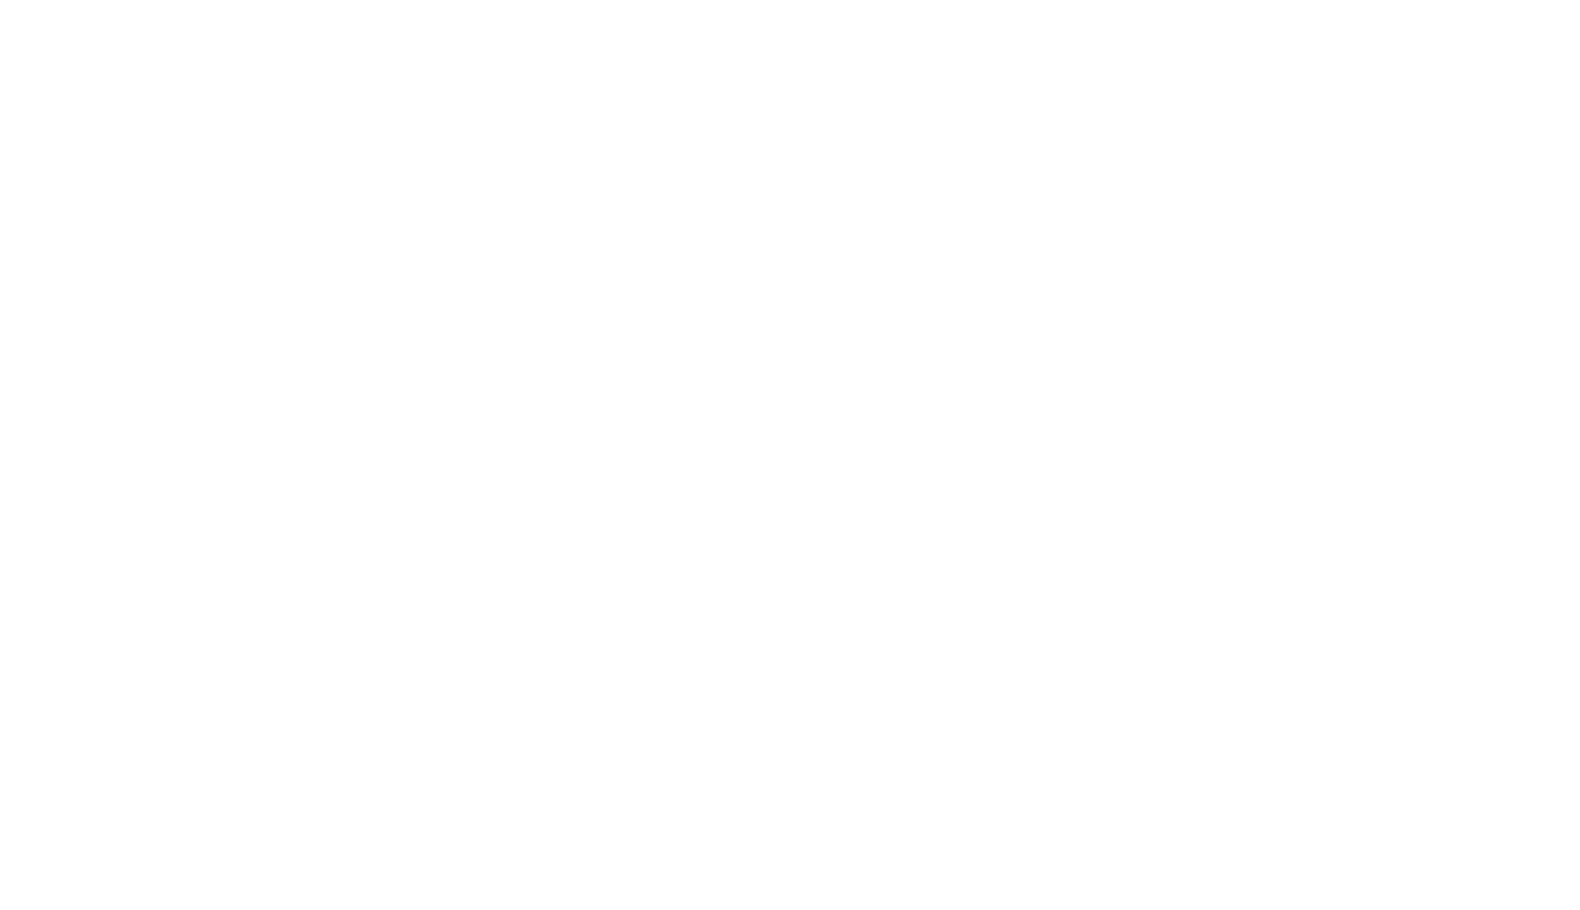 Carbon Neutral Organisation logo